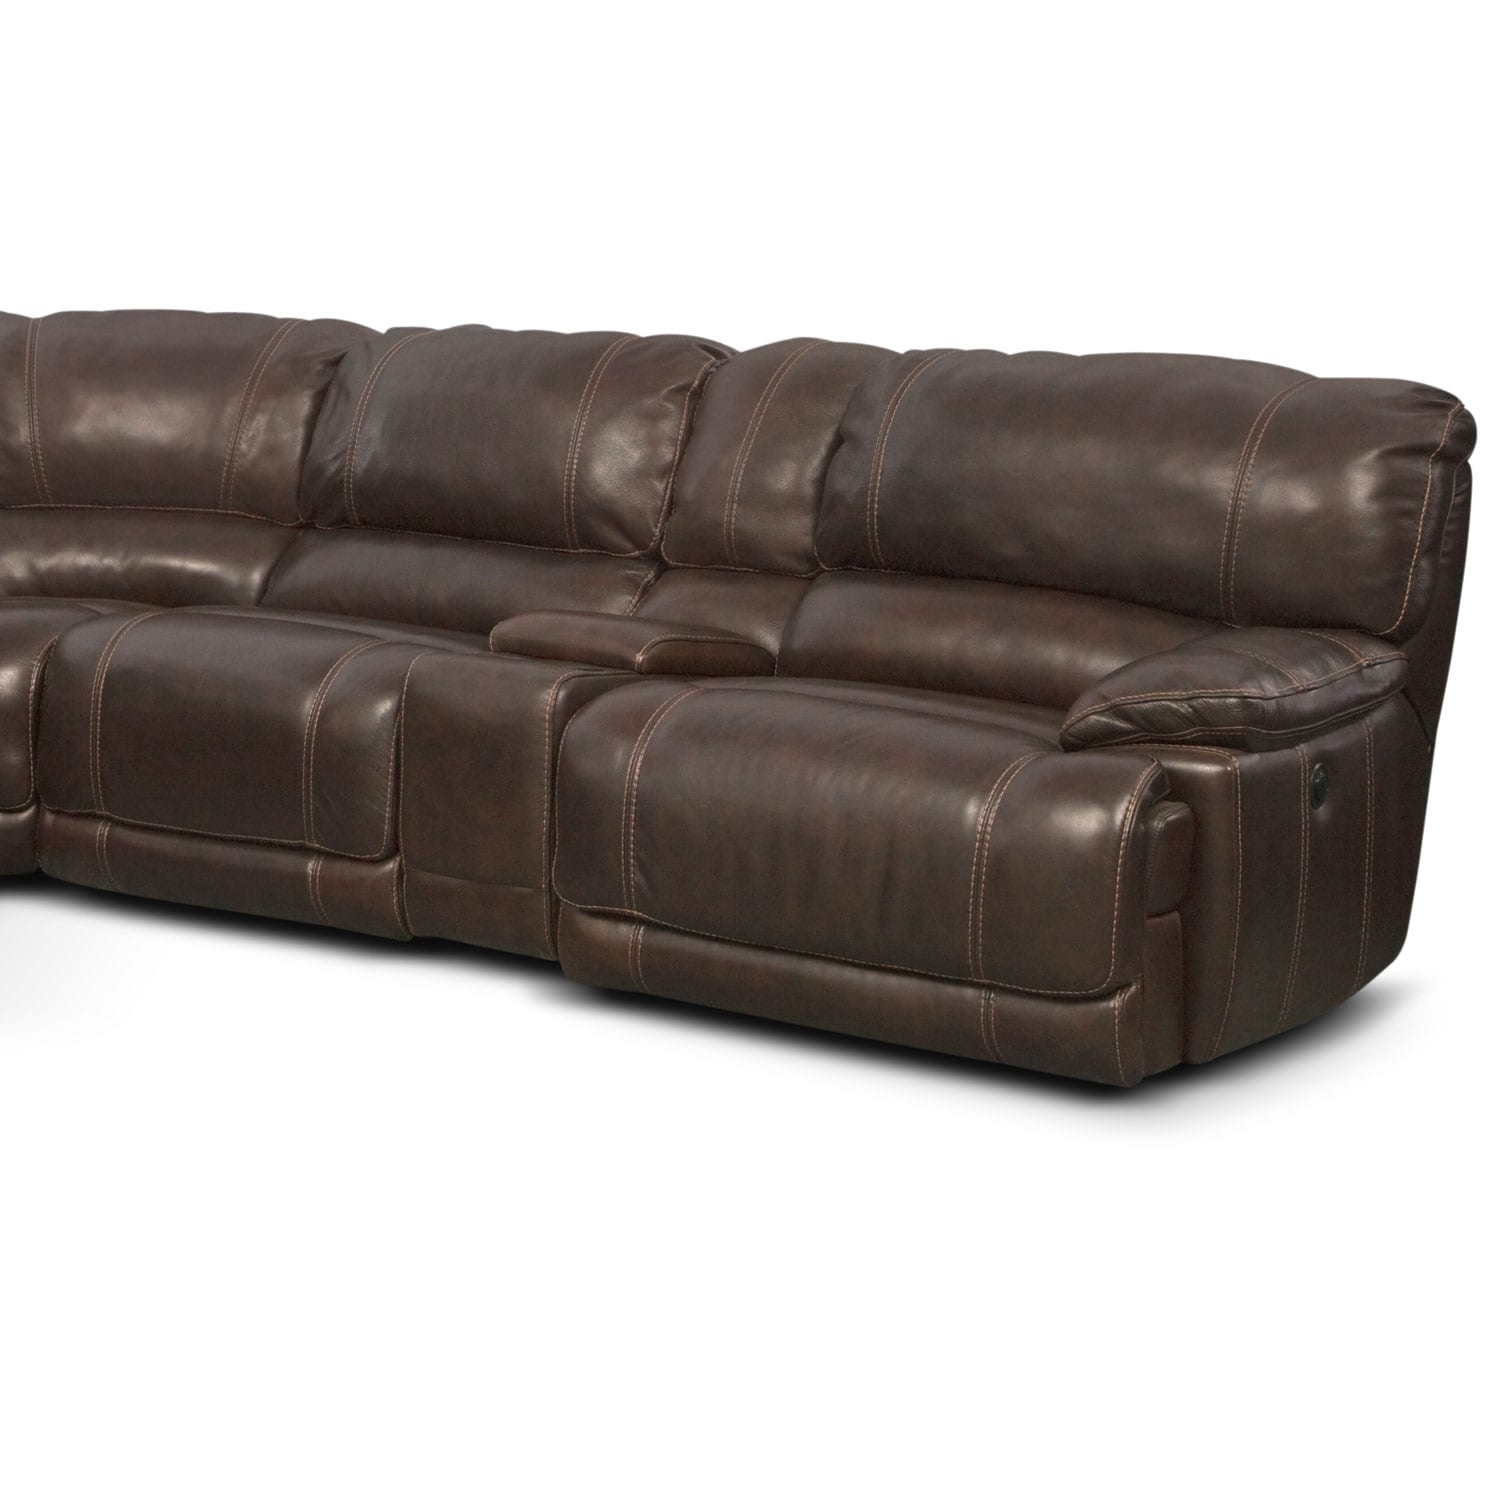 click sectional reclining with change facing to recliner sectionals chocolate product chaise piece seating item right image softie room power living big